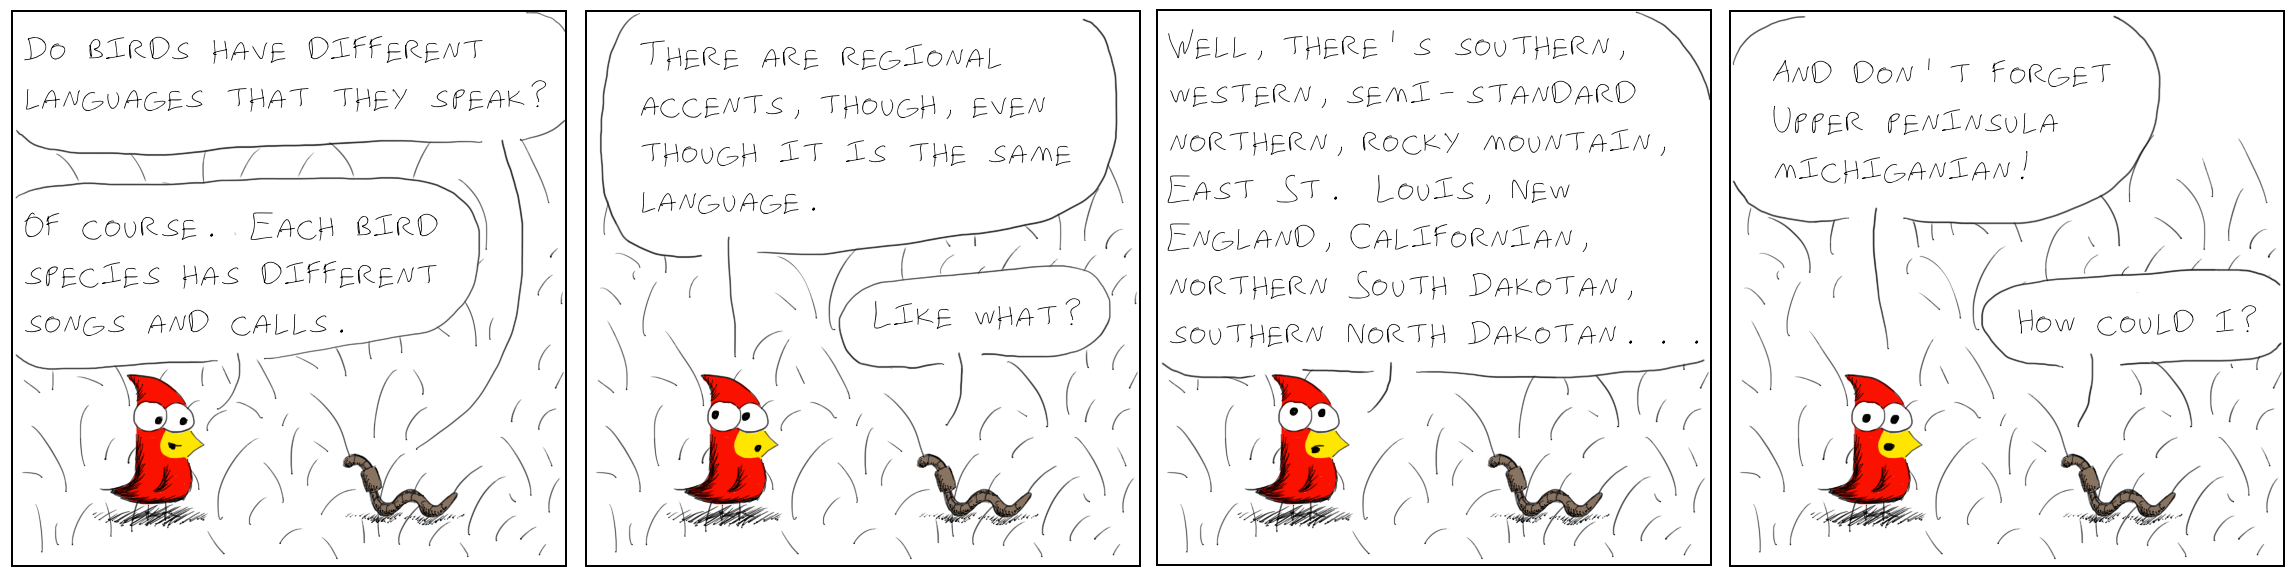 The real question is whether worms have regional accents.